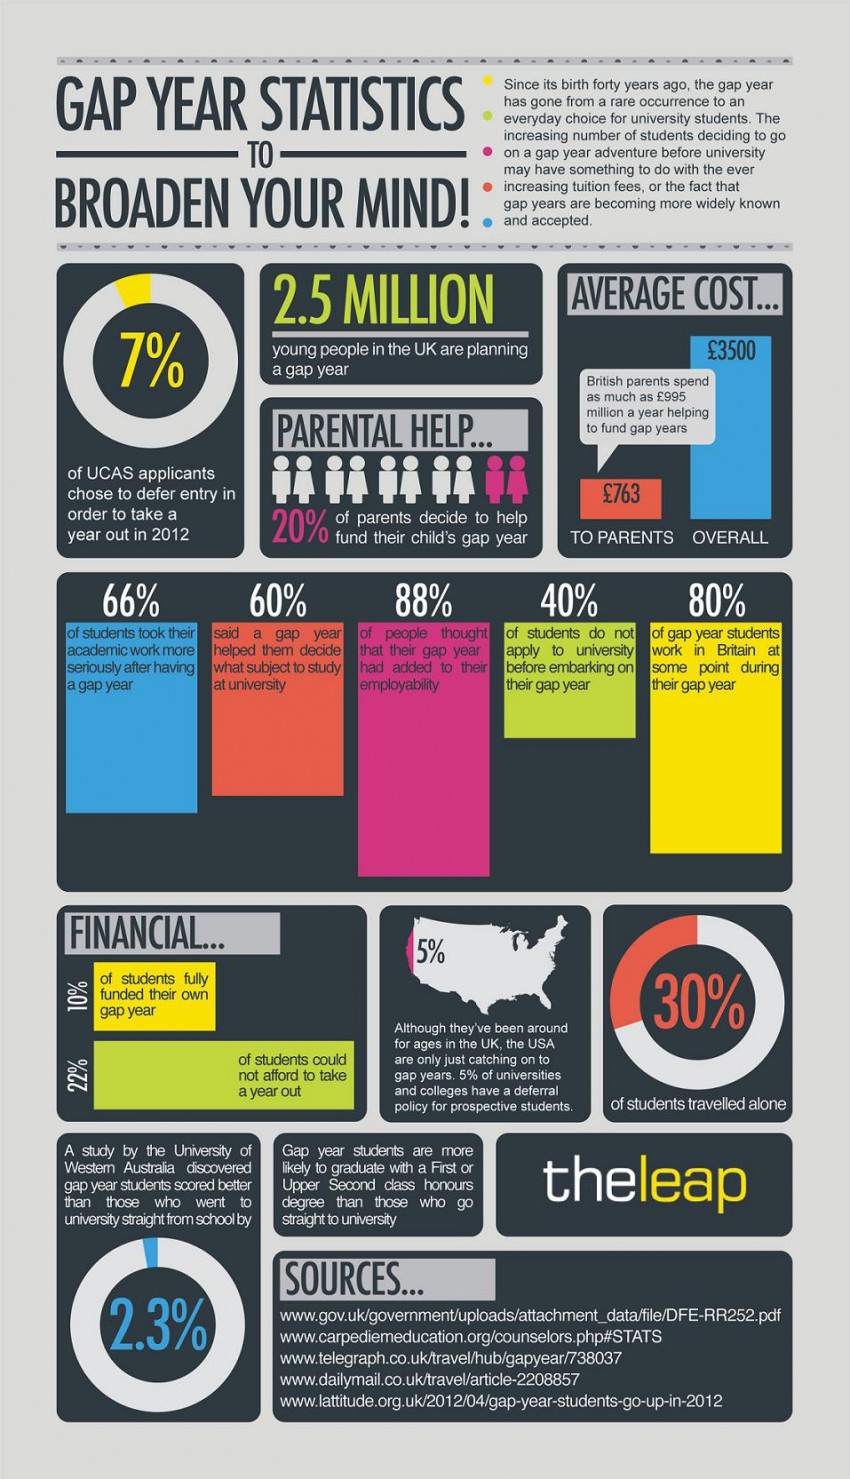 Gap Year Statistics to Broaden Your Mind!